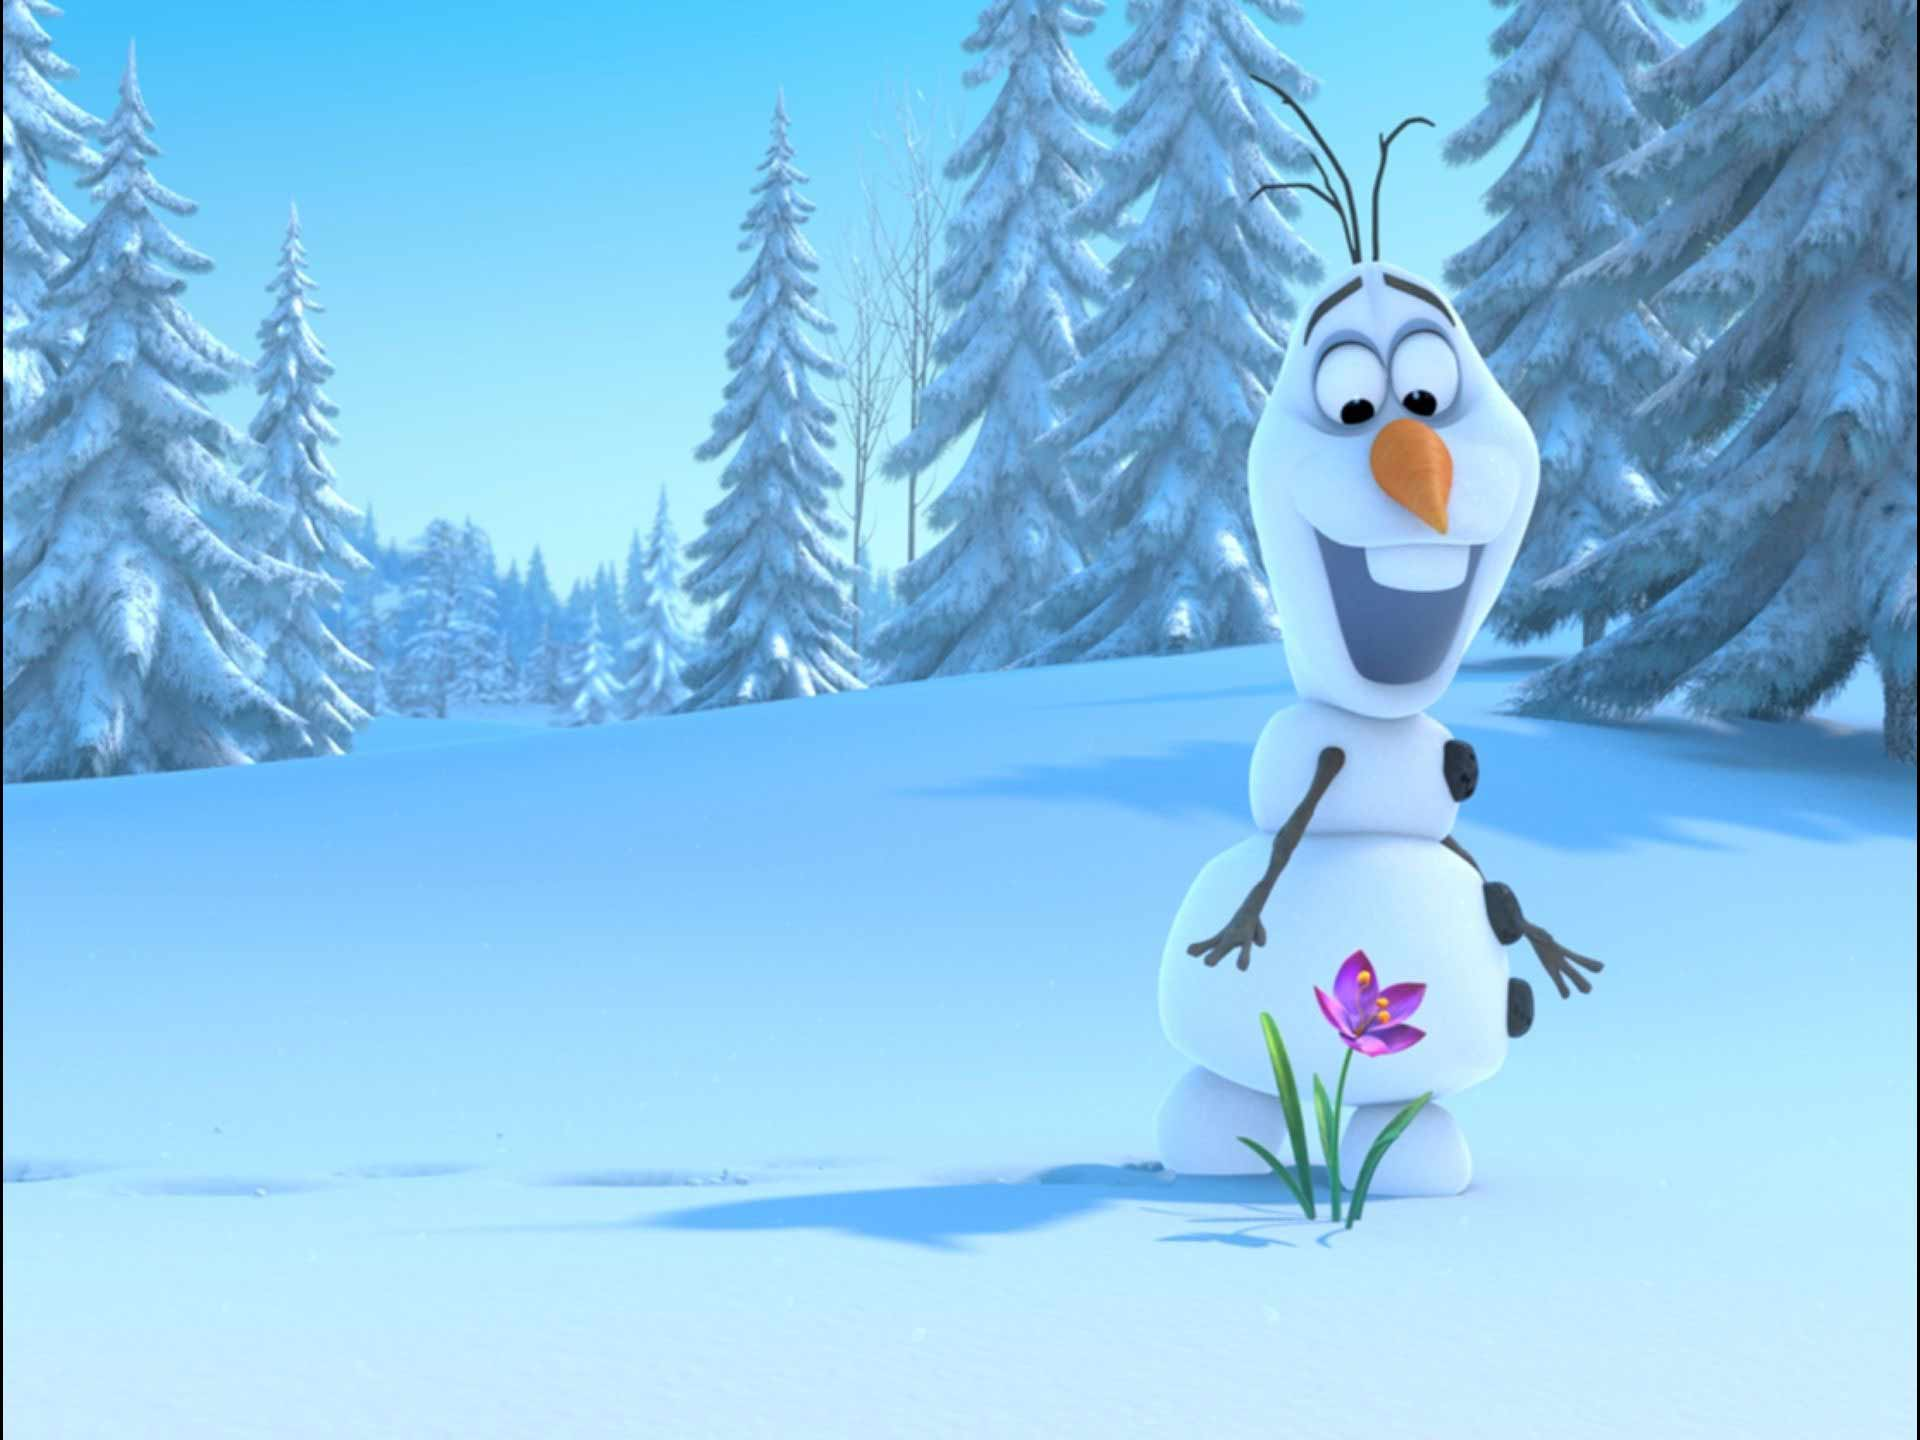 Disney Frozen Wallpapers Desktop Backgrounds HD Frozen Movie 1920x1440